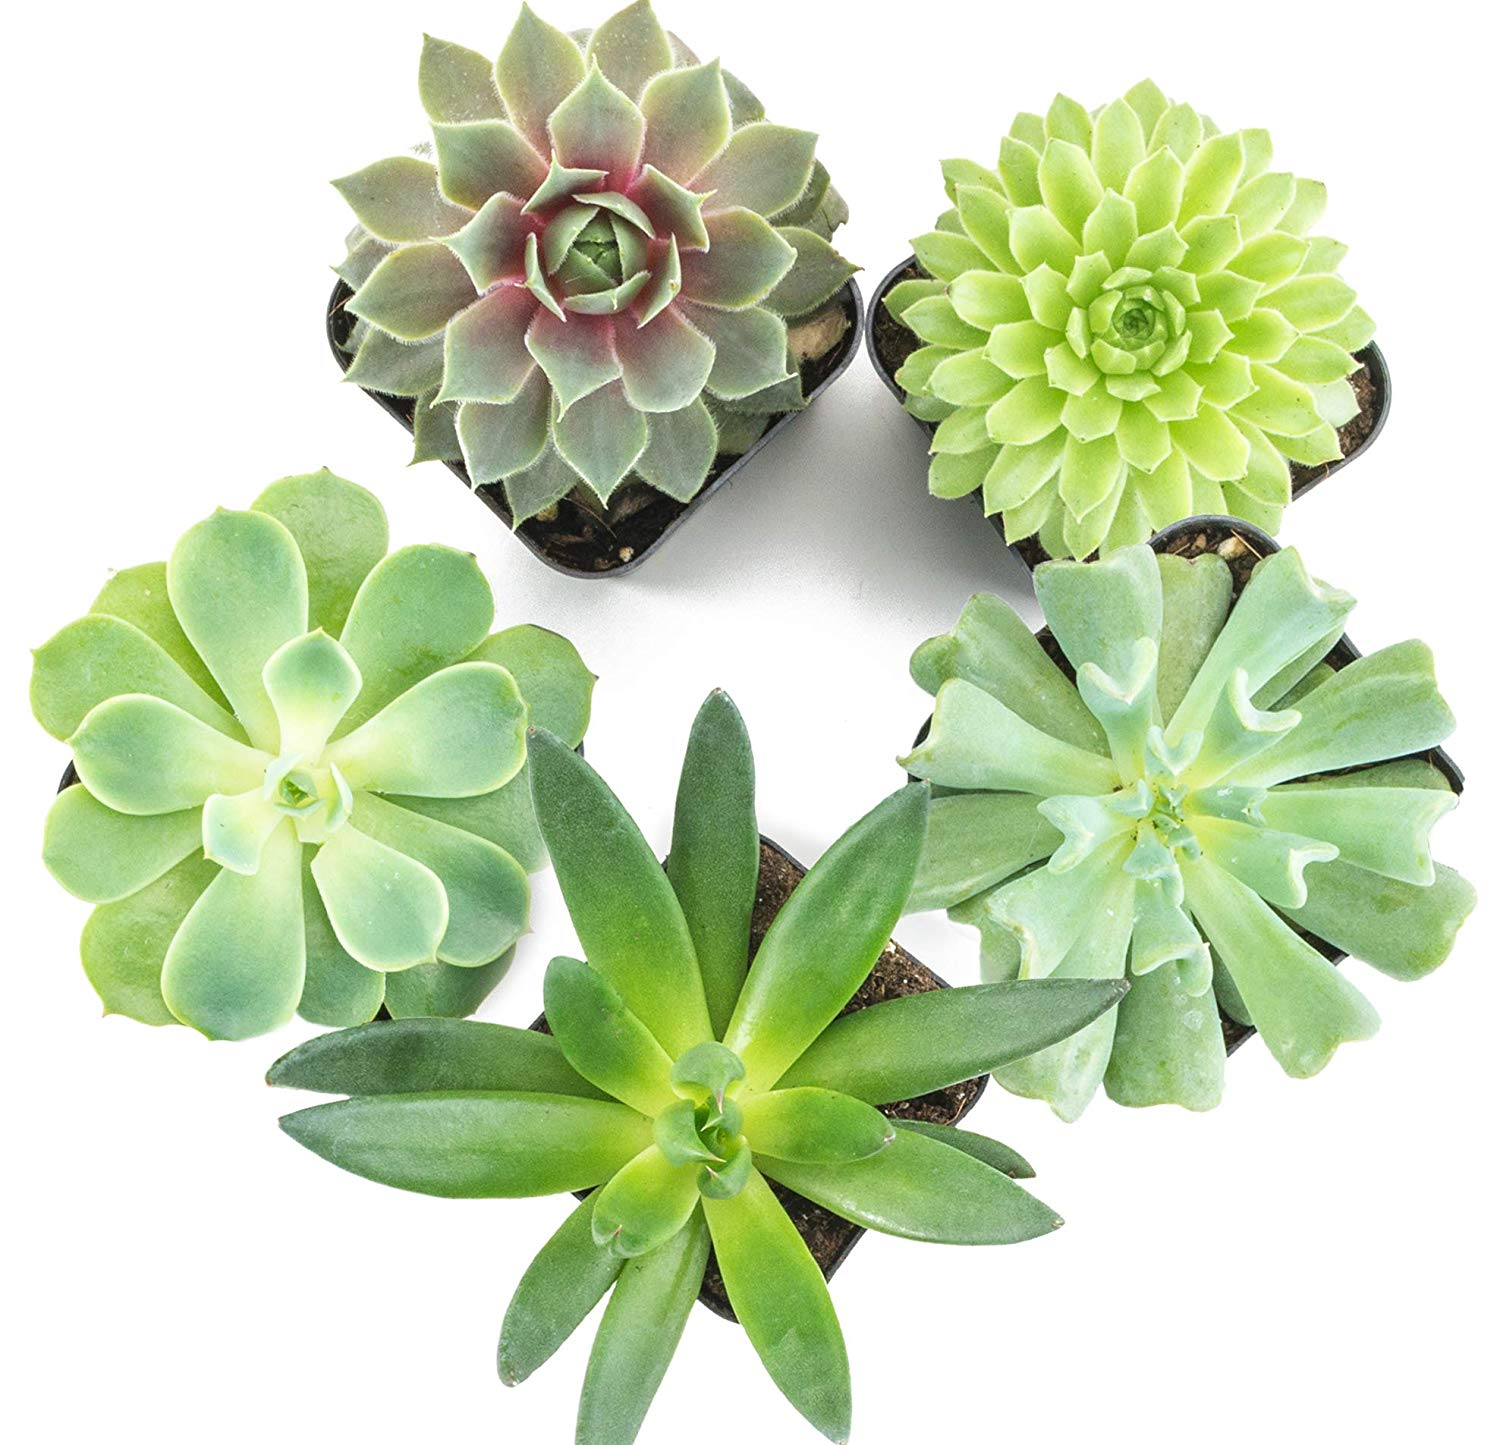 Succulent Plants Fully Rooted in Succulent Planter Pots with Succulent Soil